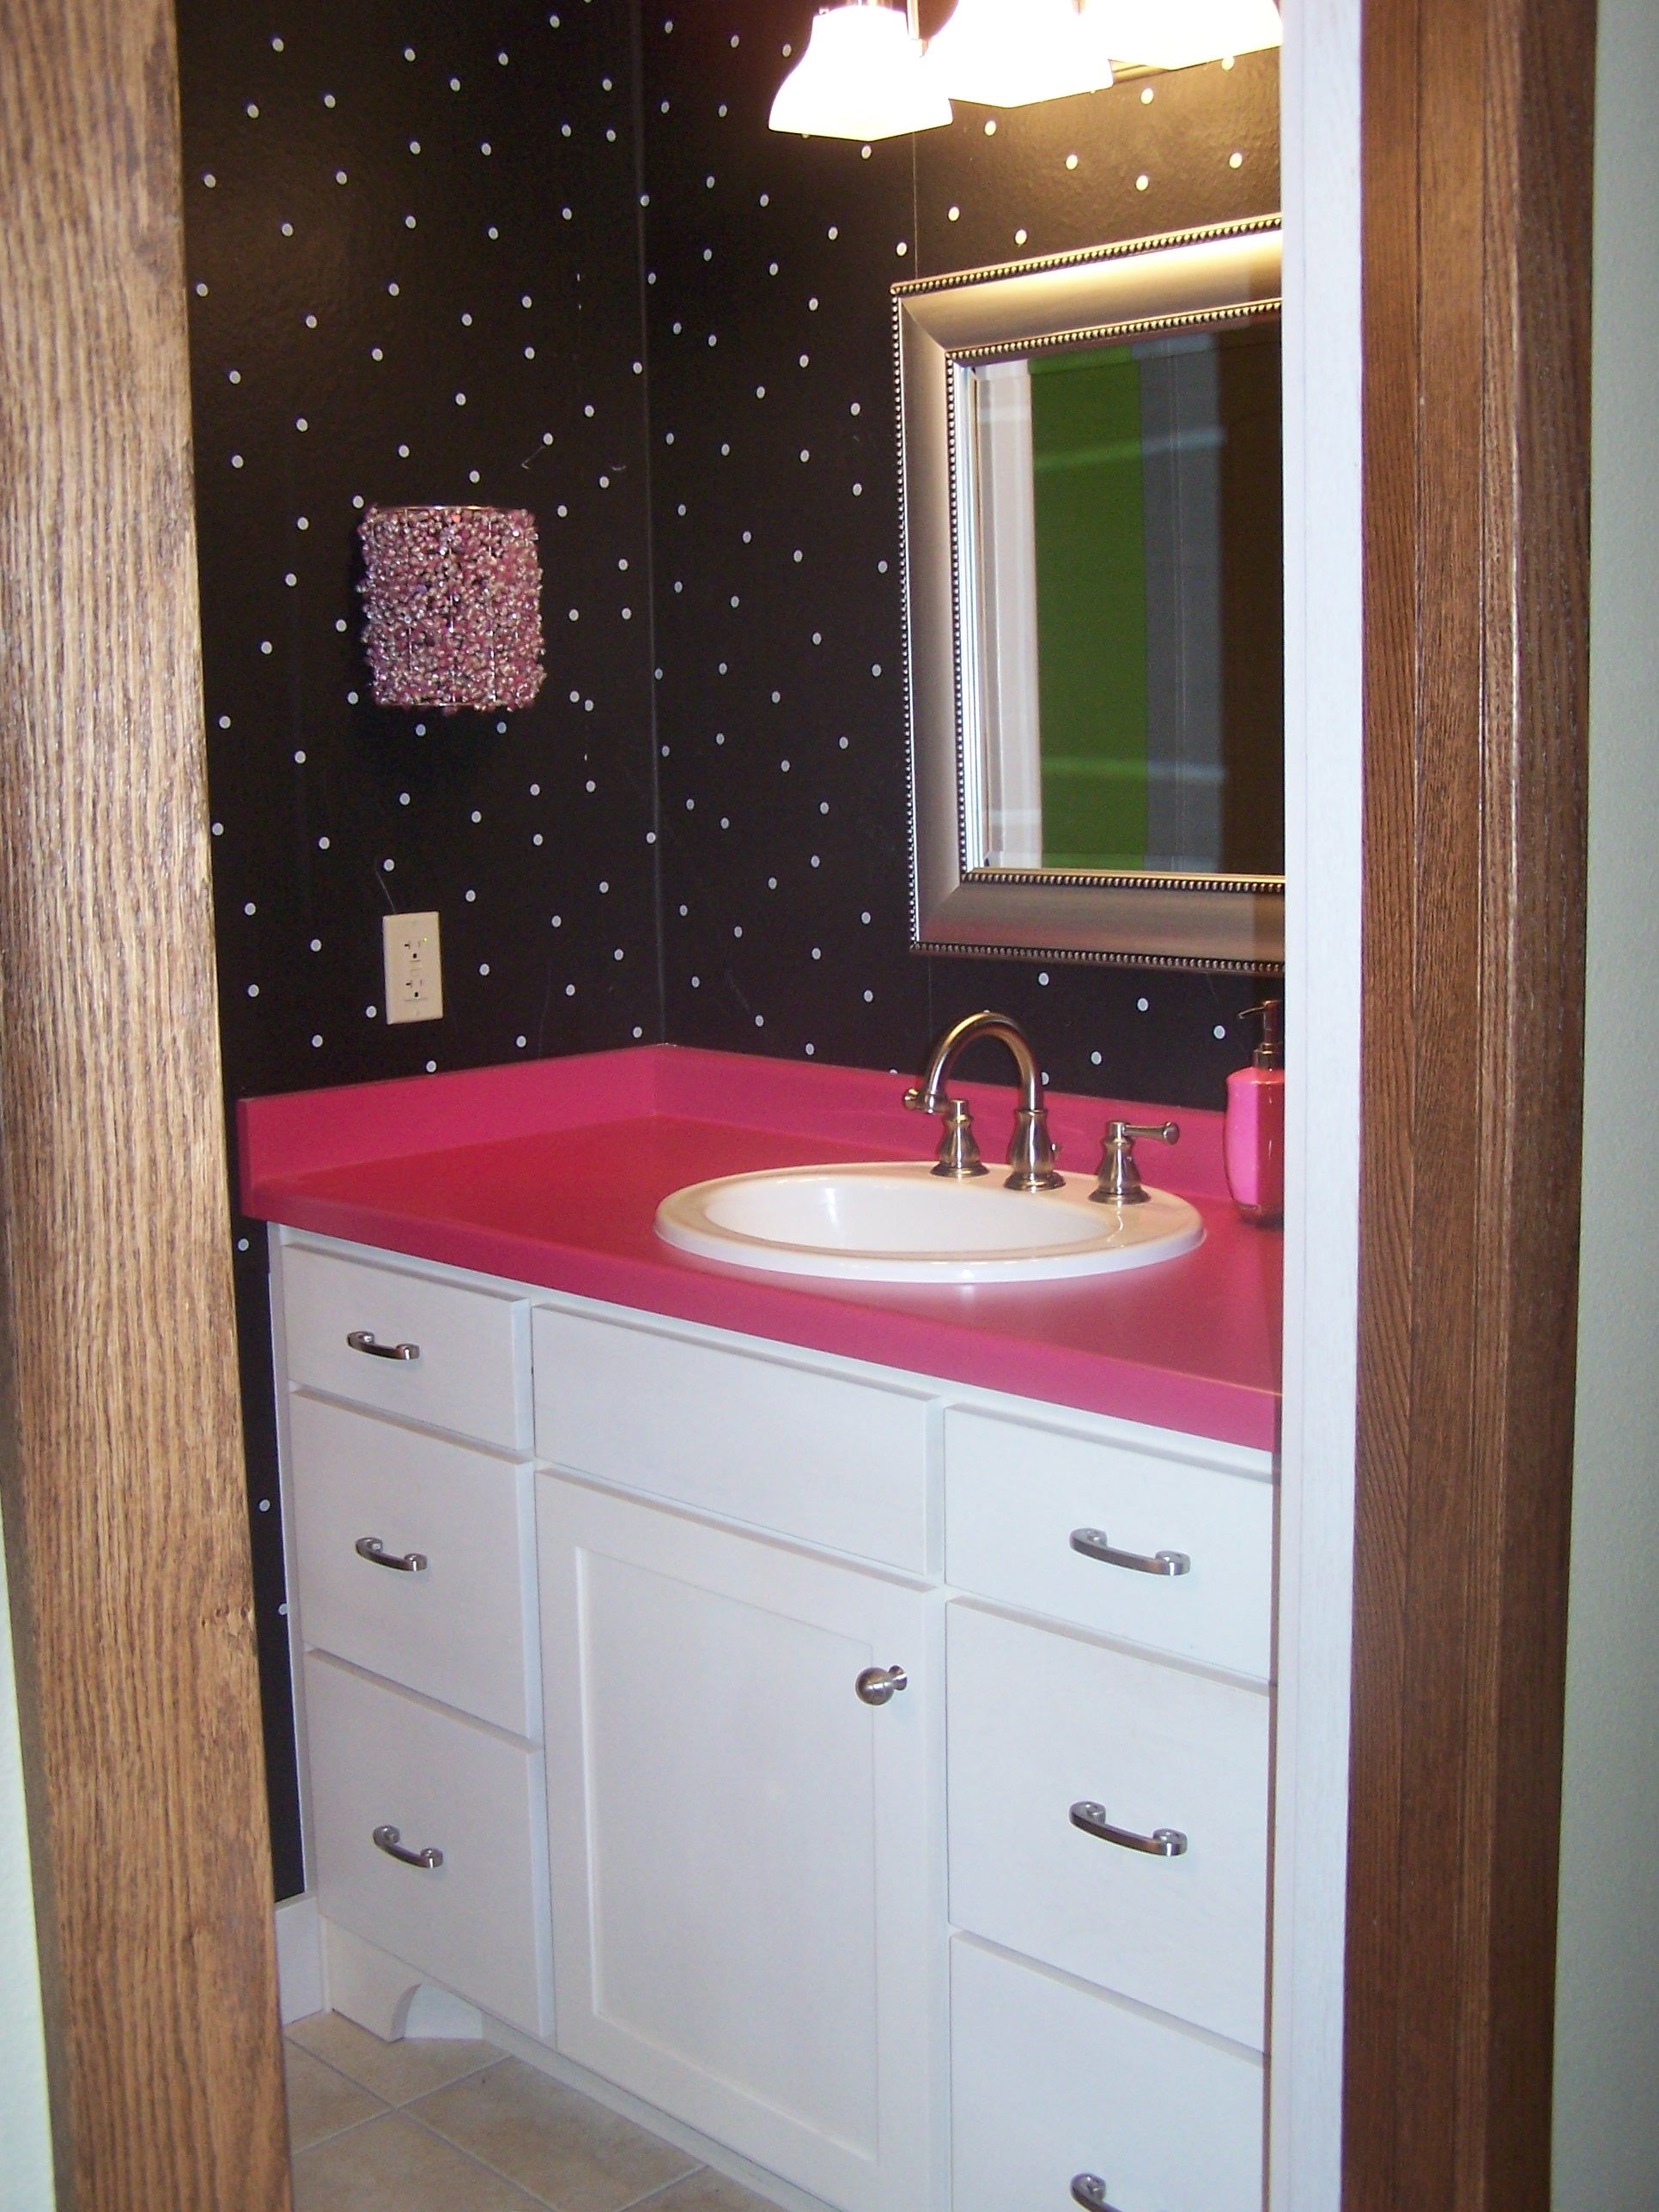 Merveilleux Girls Bathroom With Hot Pink Laminate Countertops And White Cabinets By  Swita Cabinetry.